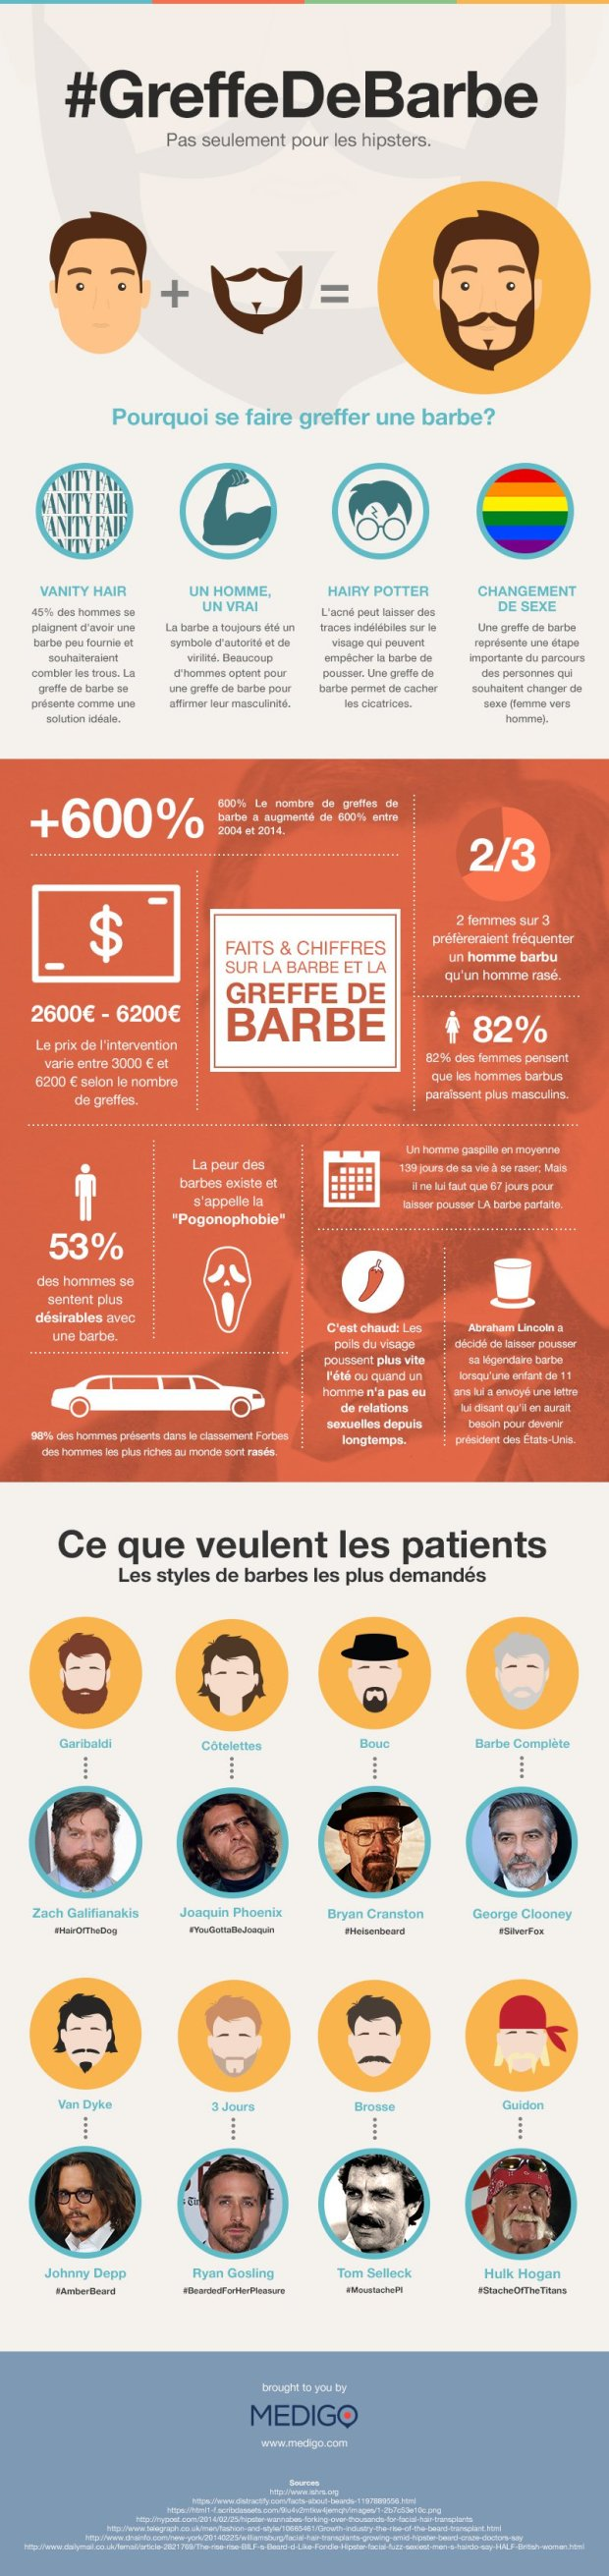 GreffedeBarbe-Infographie